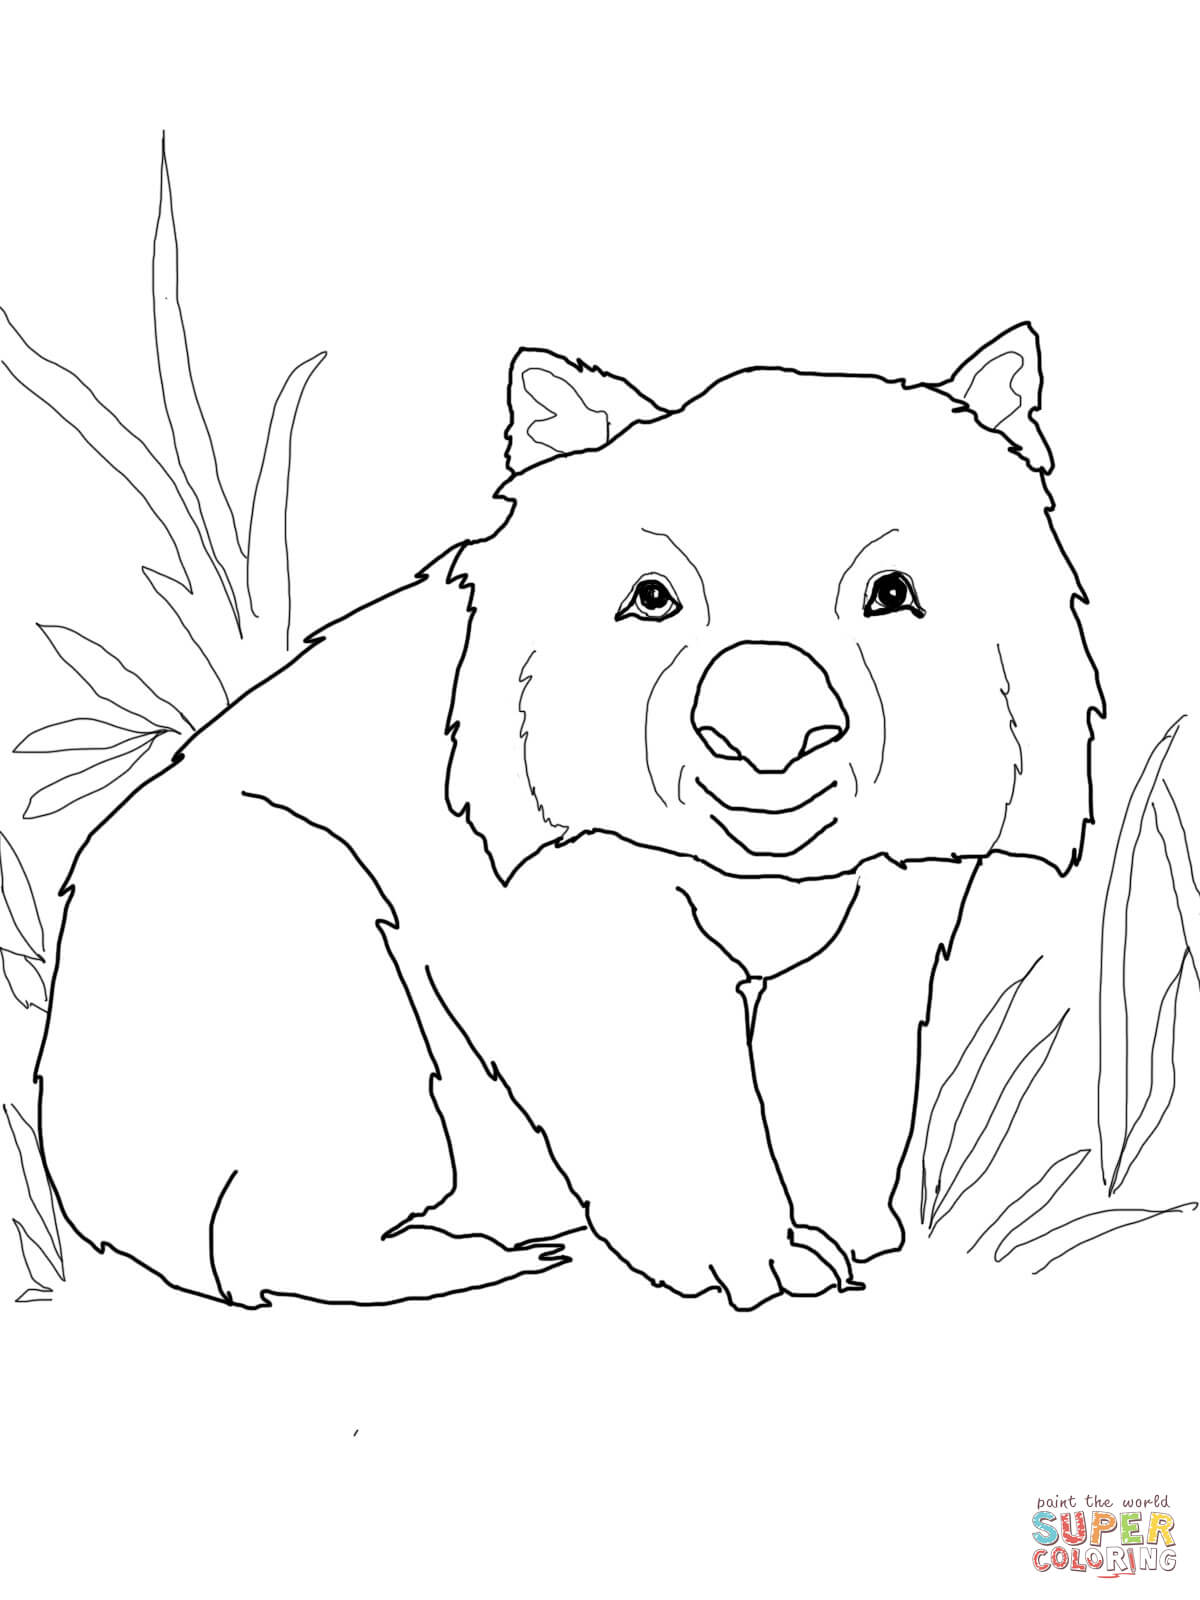 Wombat colouring pages